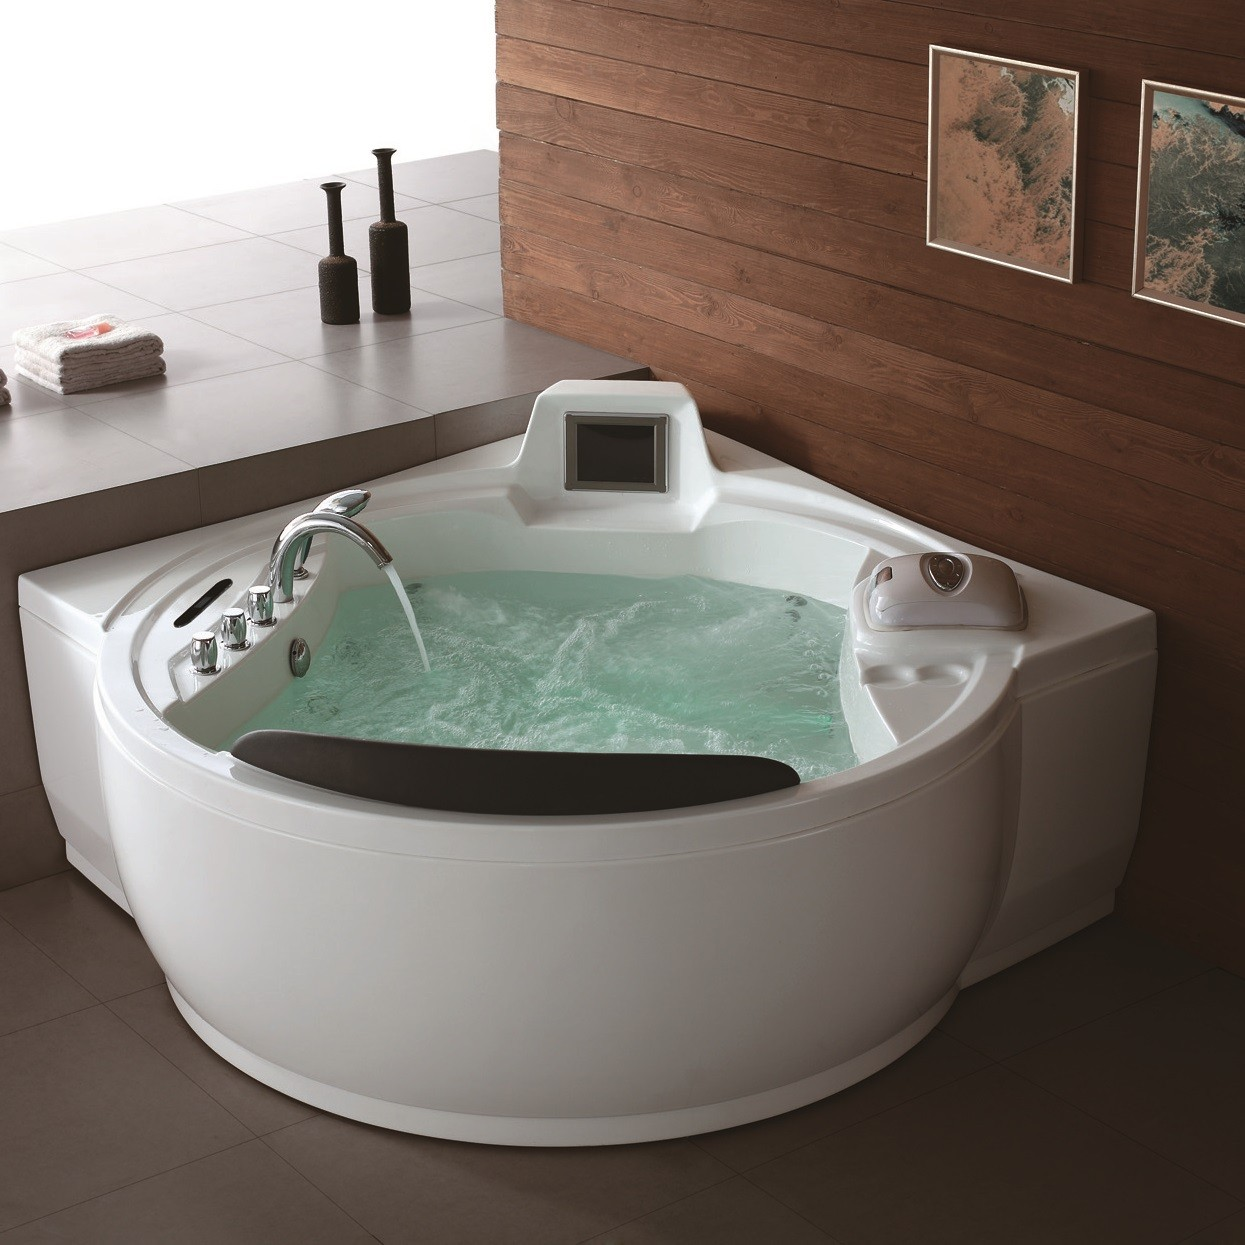 whirlpool bath freeport whirlpool tub MJIKZVF